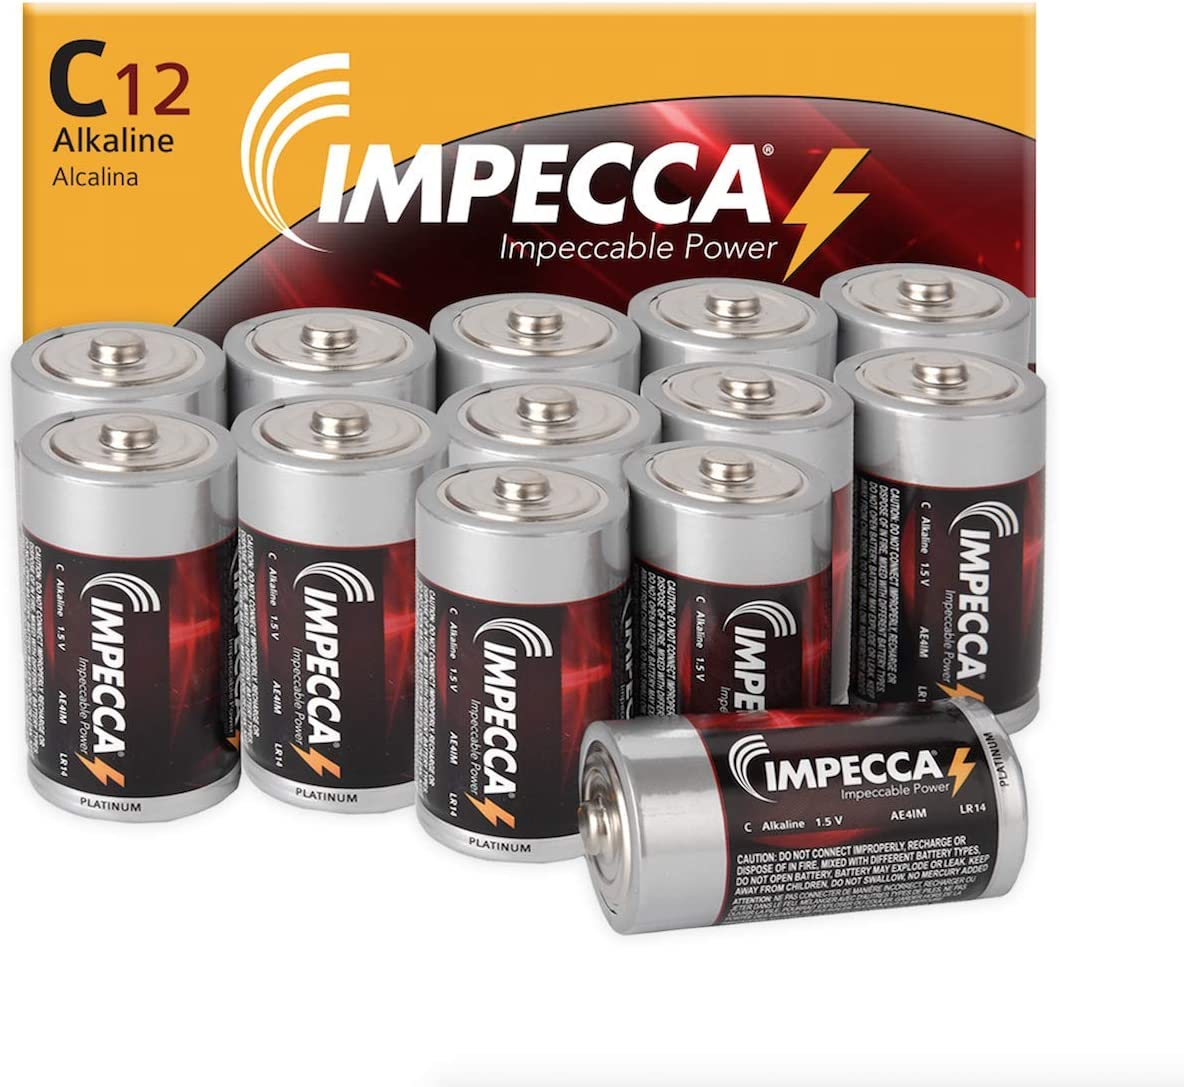 12 Pack 1.5 Volt LR14 Size C Alkaline Batteries for Everyday Use IMPECCA C Batteries High Performance C Cell Alkaline Battery 12 Count